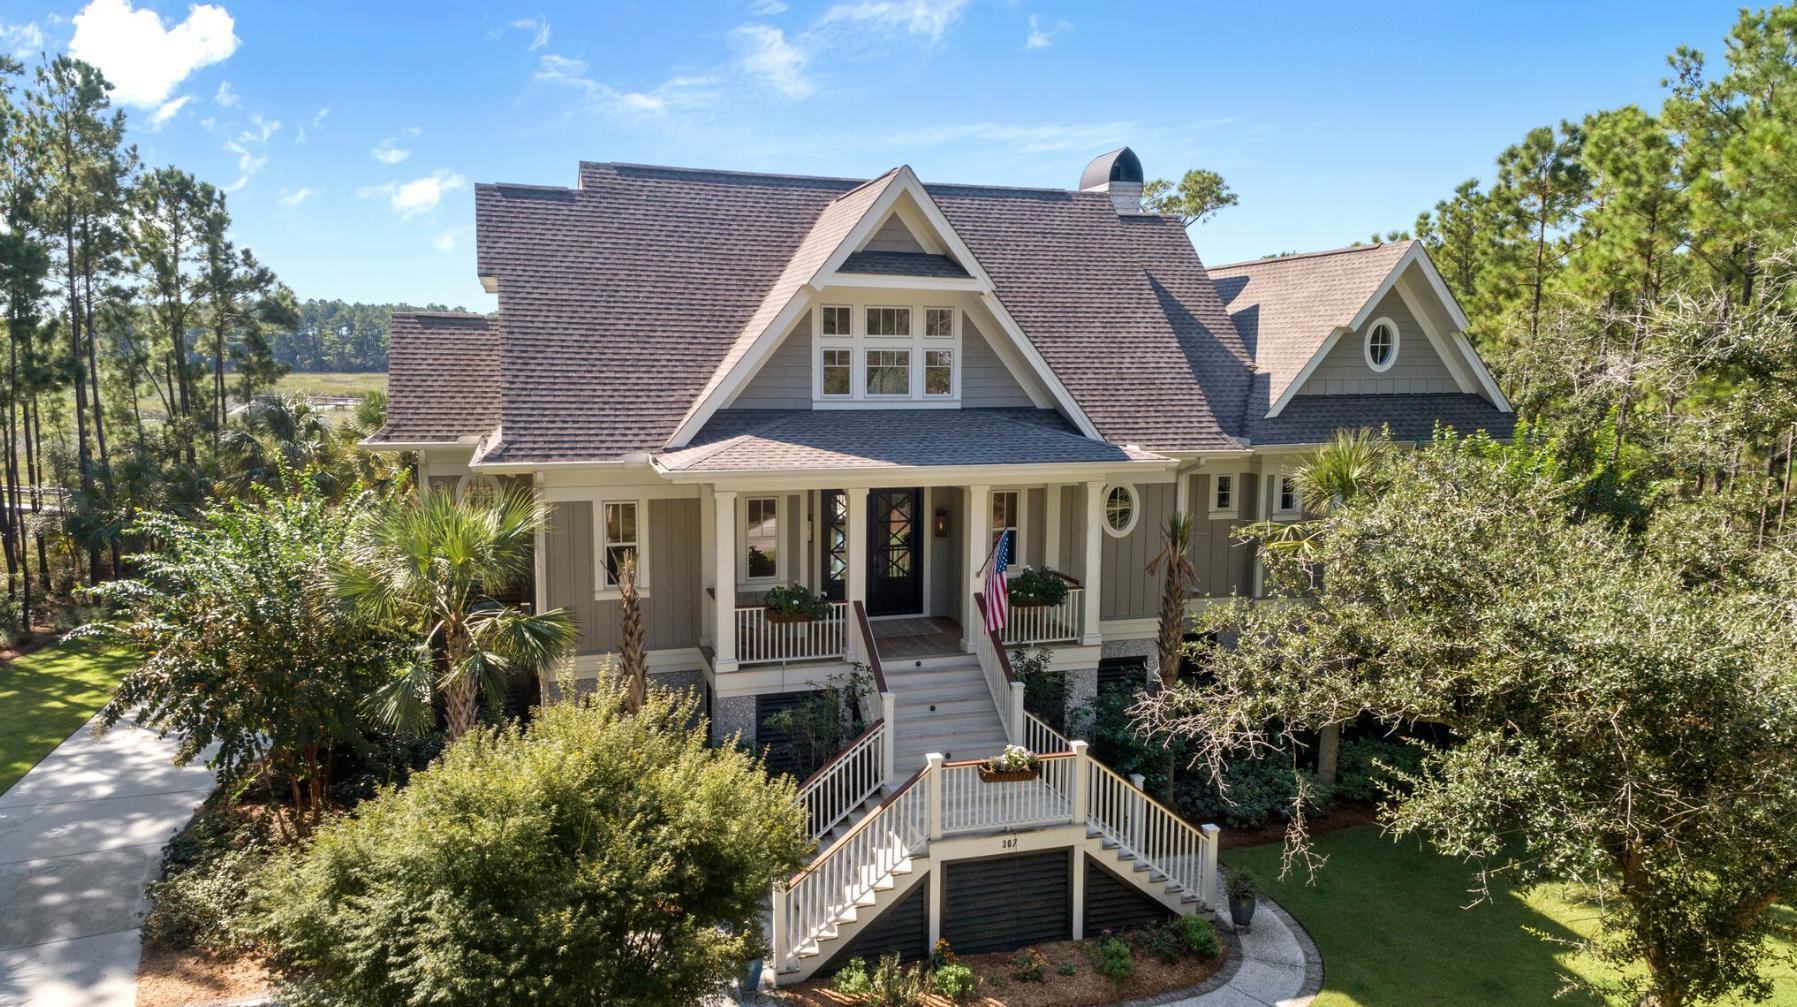 Beresford Hall Homes For Sale - 307 Martins Creek, Charleston, SC - 0